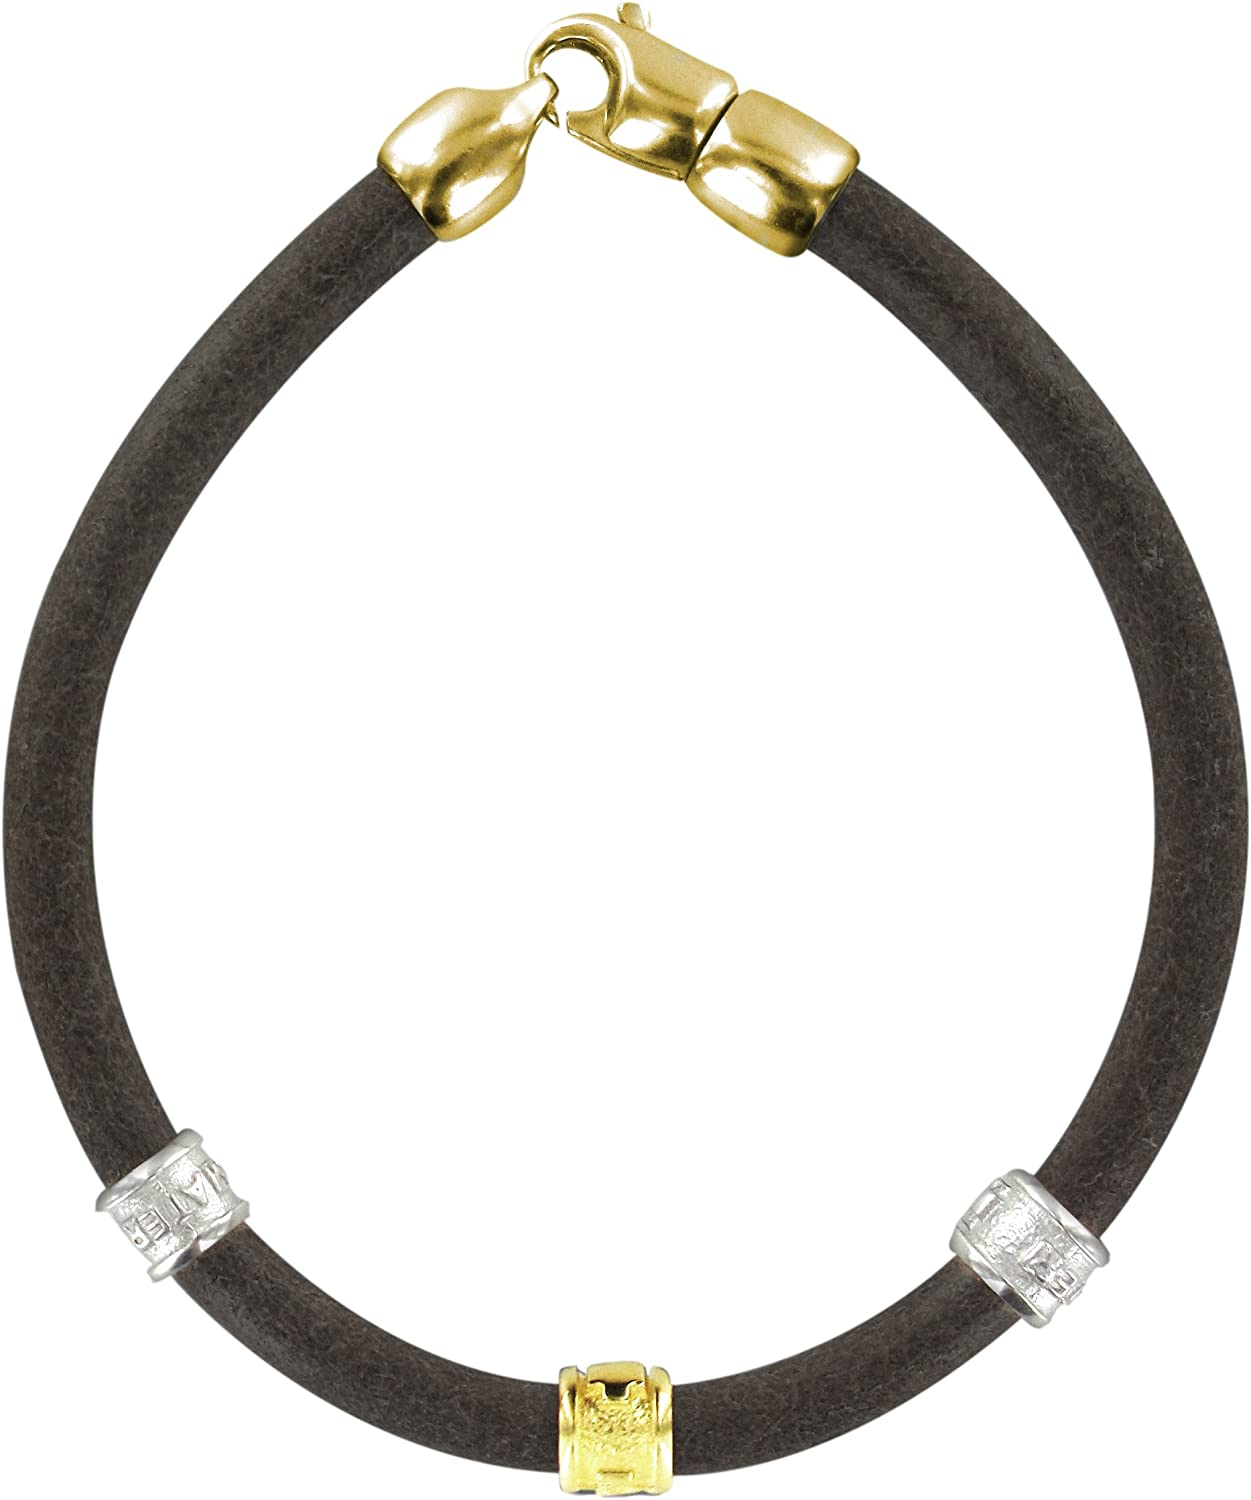 Ferrari & Arrighetti CNS Trinity Bracelet in Black Leather with Brass Inserts in the bathroom Yellow and White gold